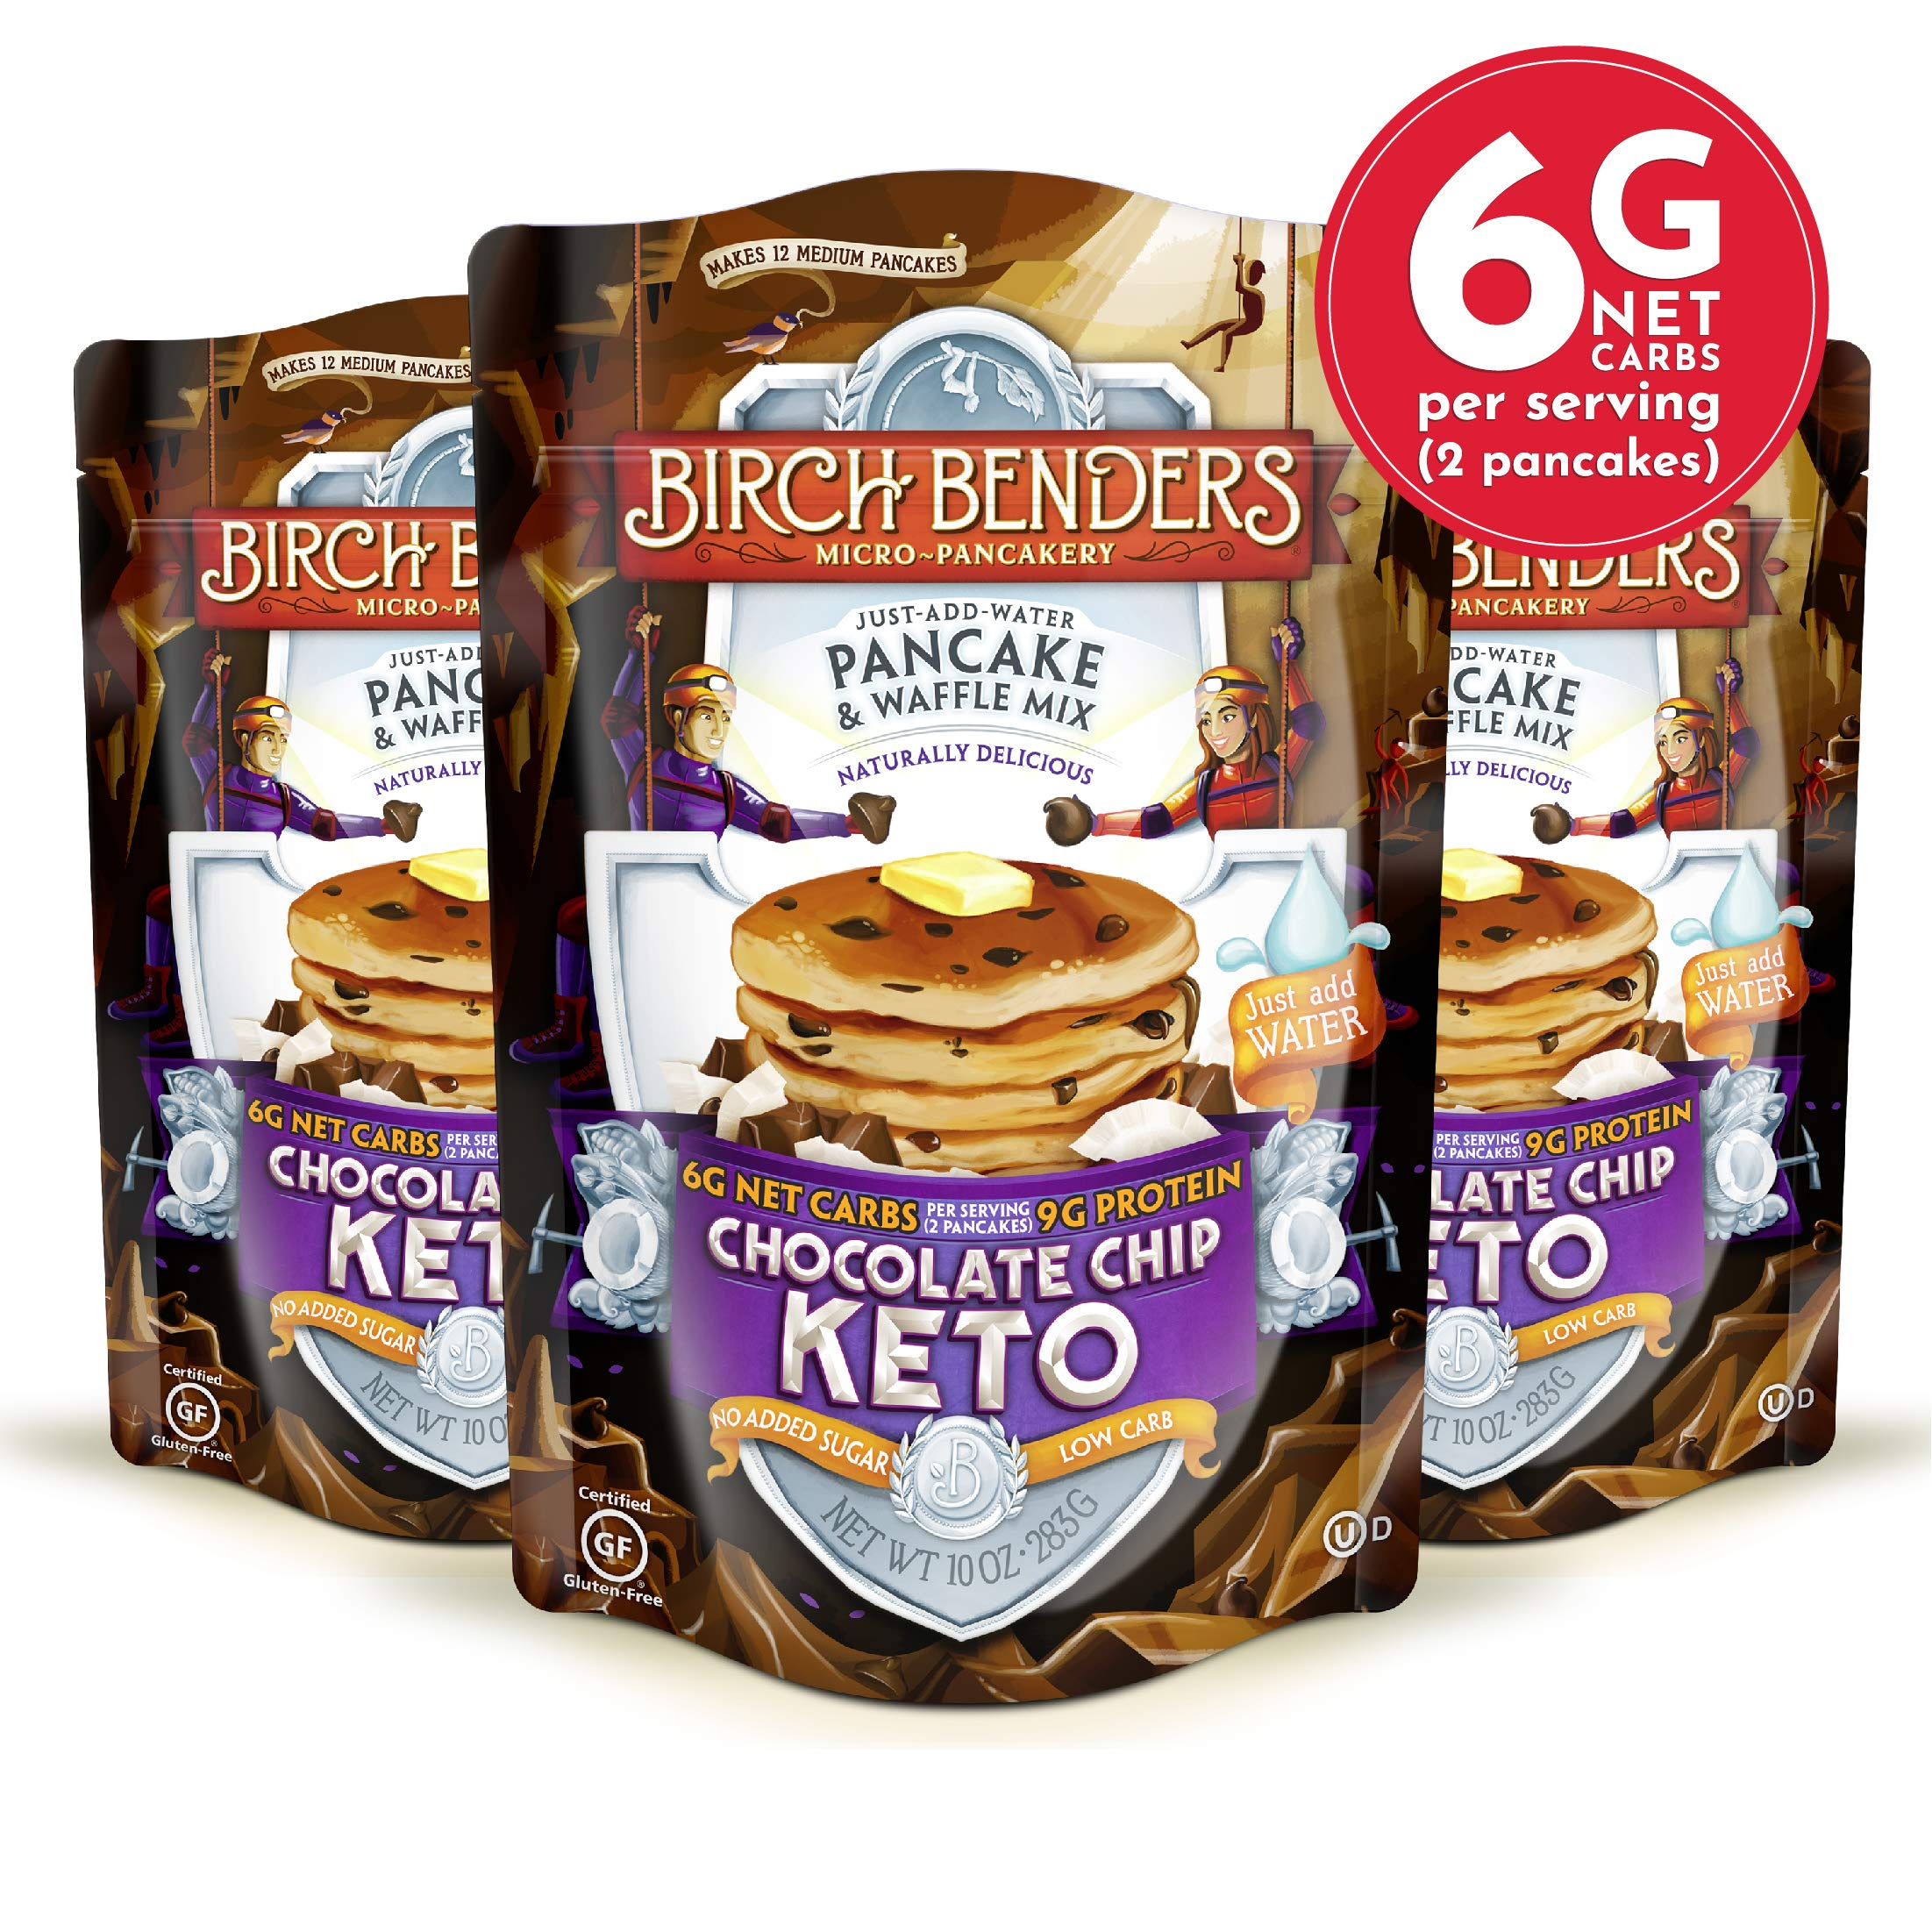 Birch Benders Keto Chocolate Chip Pancake & Waffle Mix with Almond/Coconut & Cassava Flour, 3 Count by Birch Benders